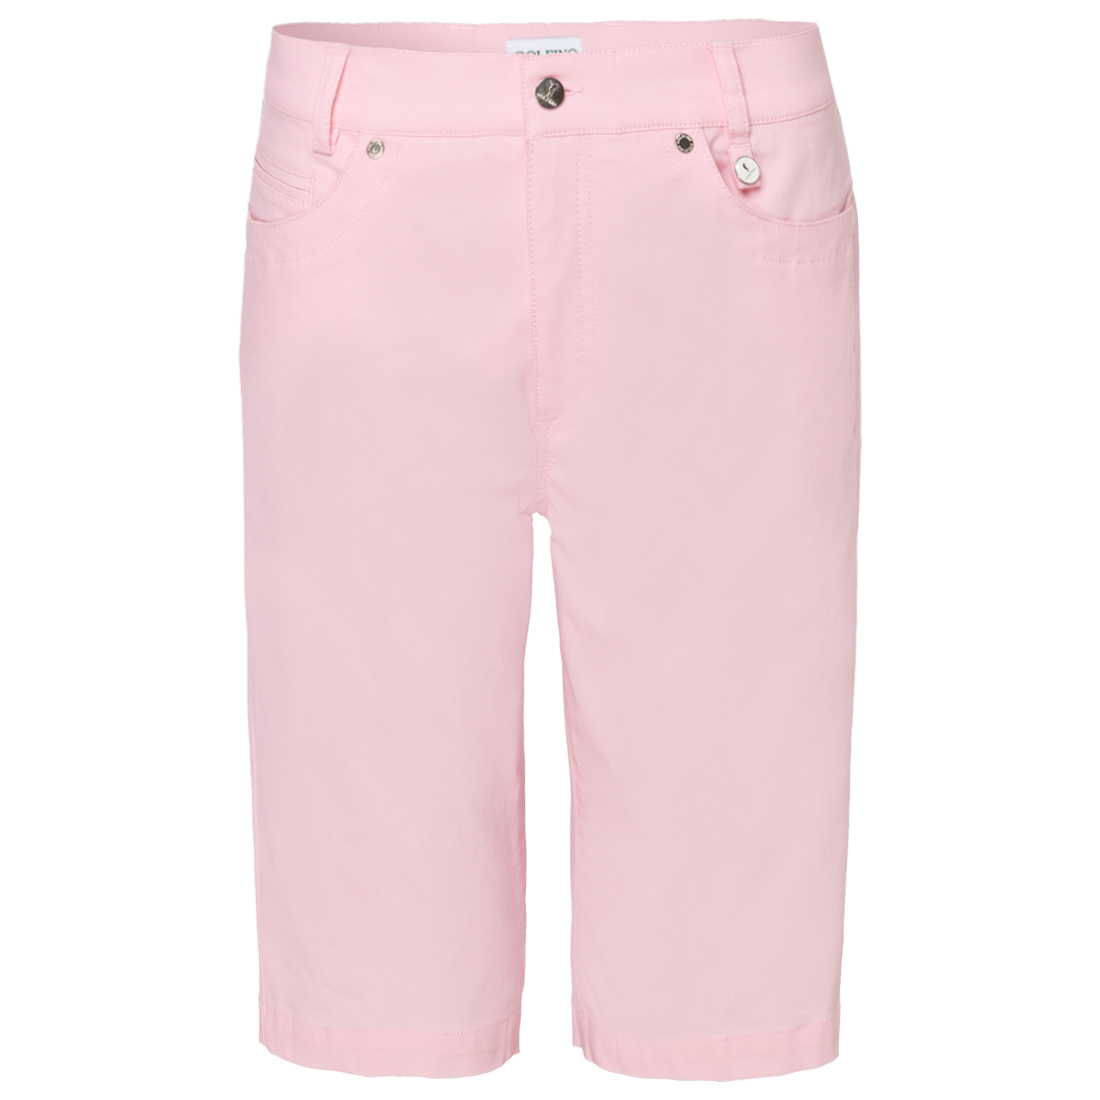 Damen Golf-Stretch-Bermudas